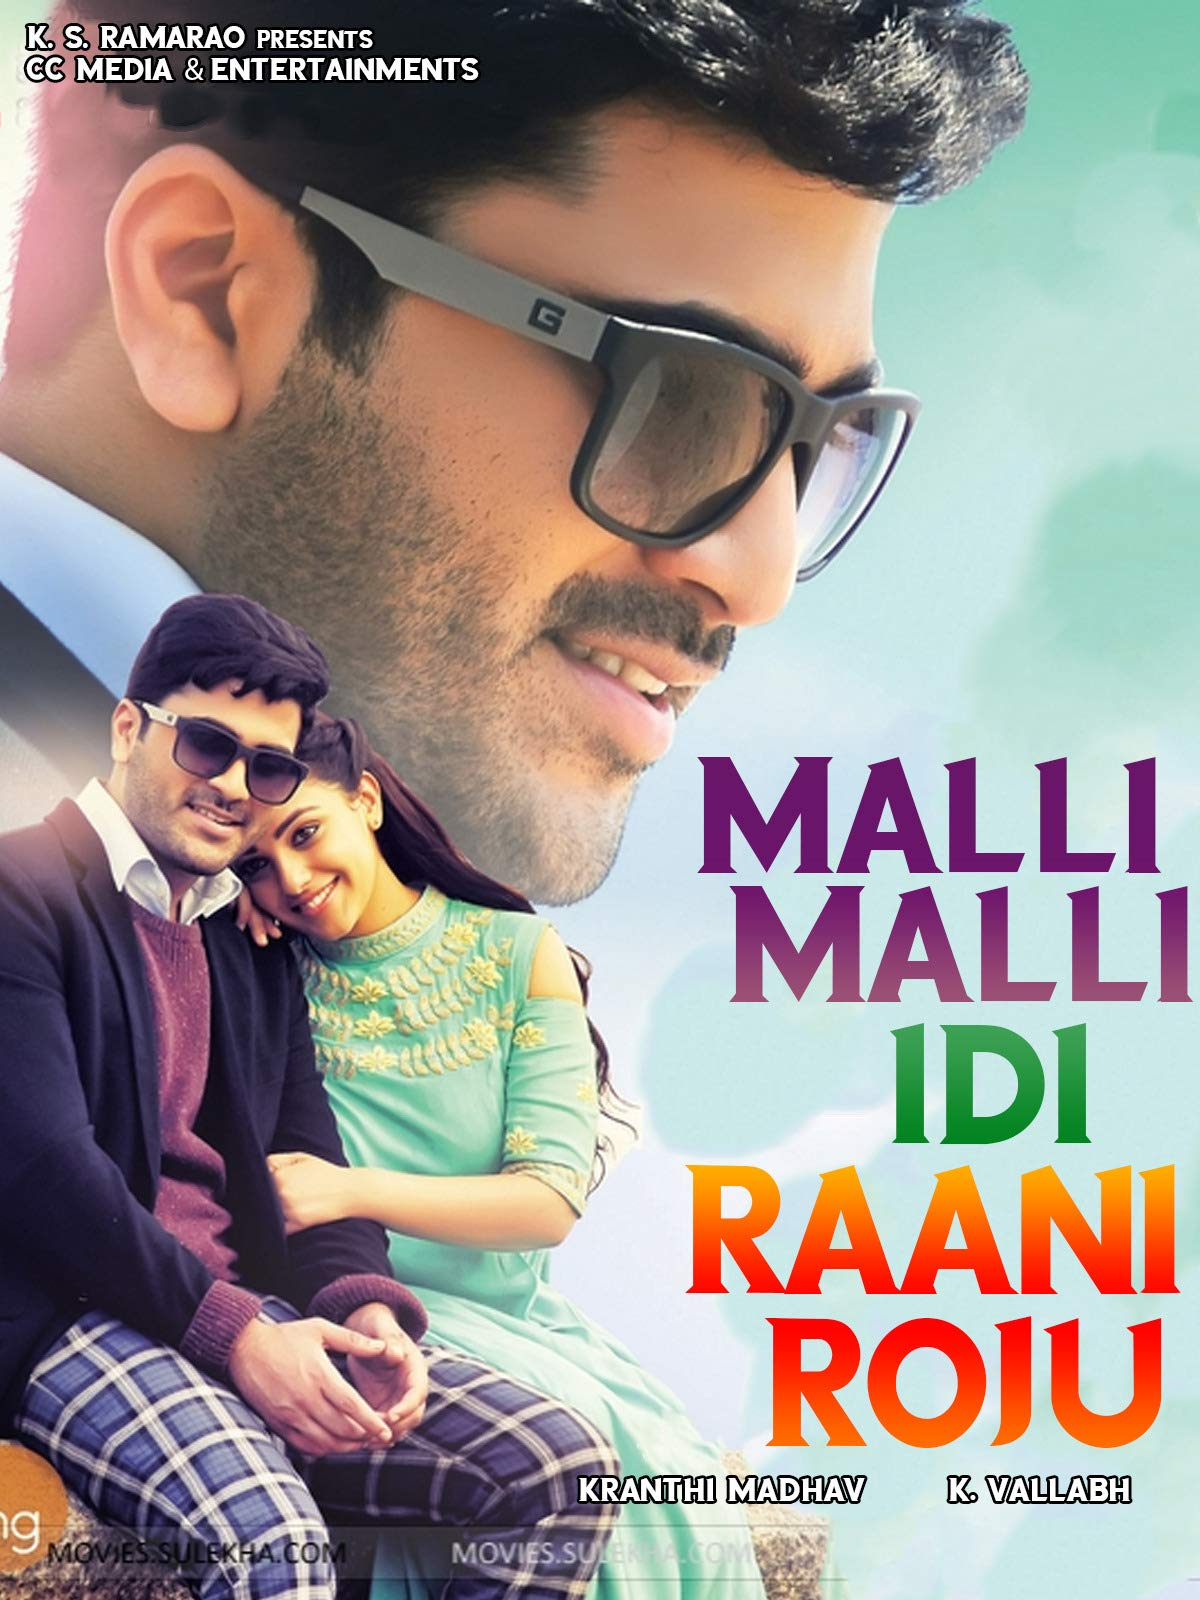 Malli Malli Idi Rani Roju (Real Diljala) 2015 Hindi Dual Audio 450MB UNCUT HDRip Download